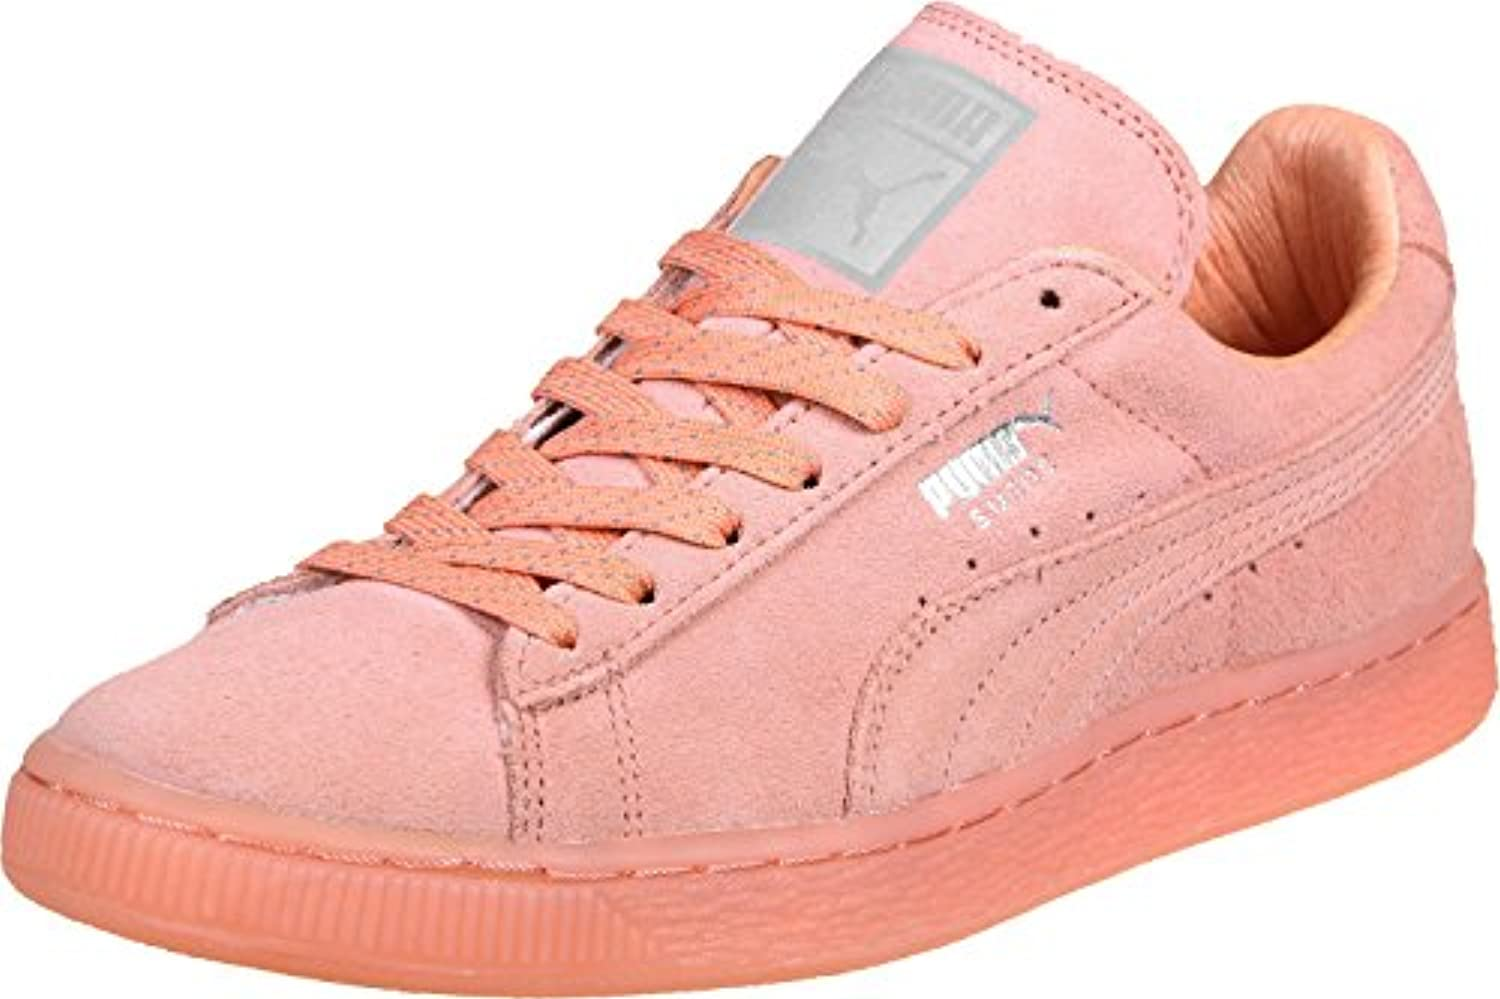 Puma Suede Classic Mono Ref ICED Leather Sneaker women Trainers 362101 08